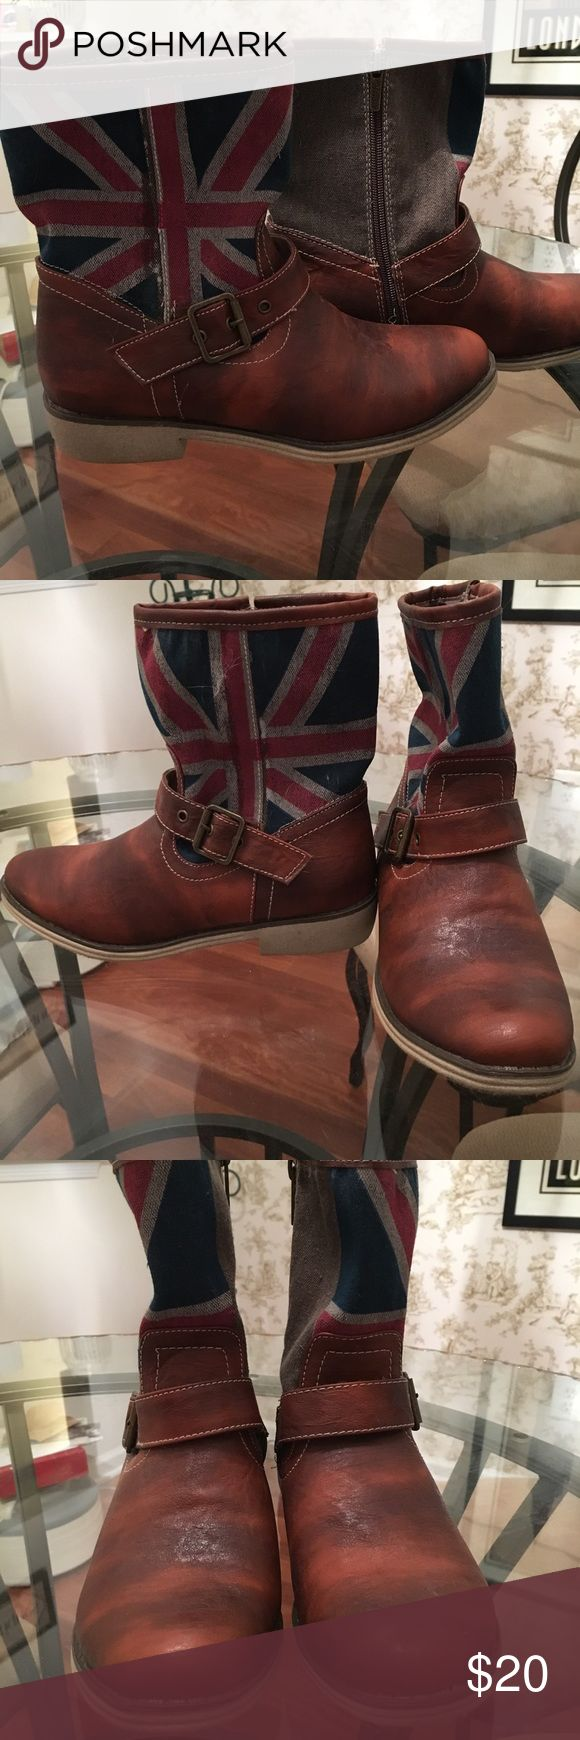 Union Jack Boots Flat boots with Union Jack design on outside. Flocked bottom on boot. Never worn; kept in closet outside shoe box. Size 9. Wanted Shoes